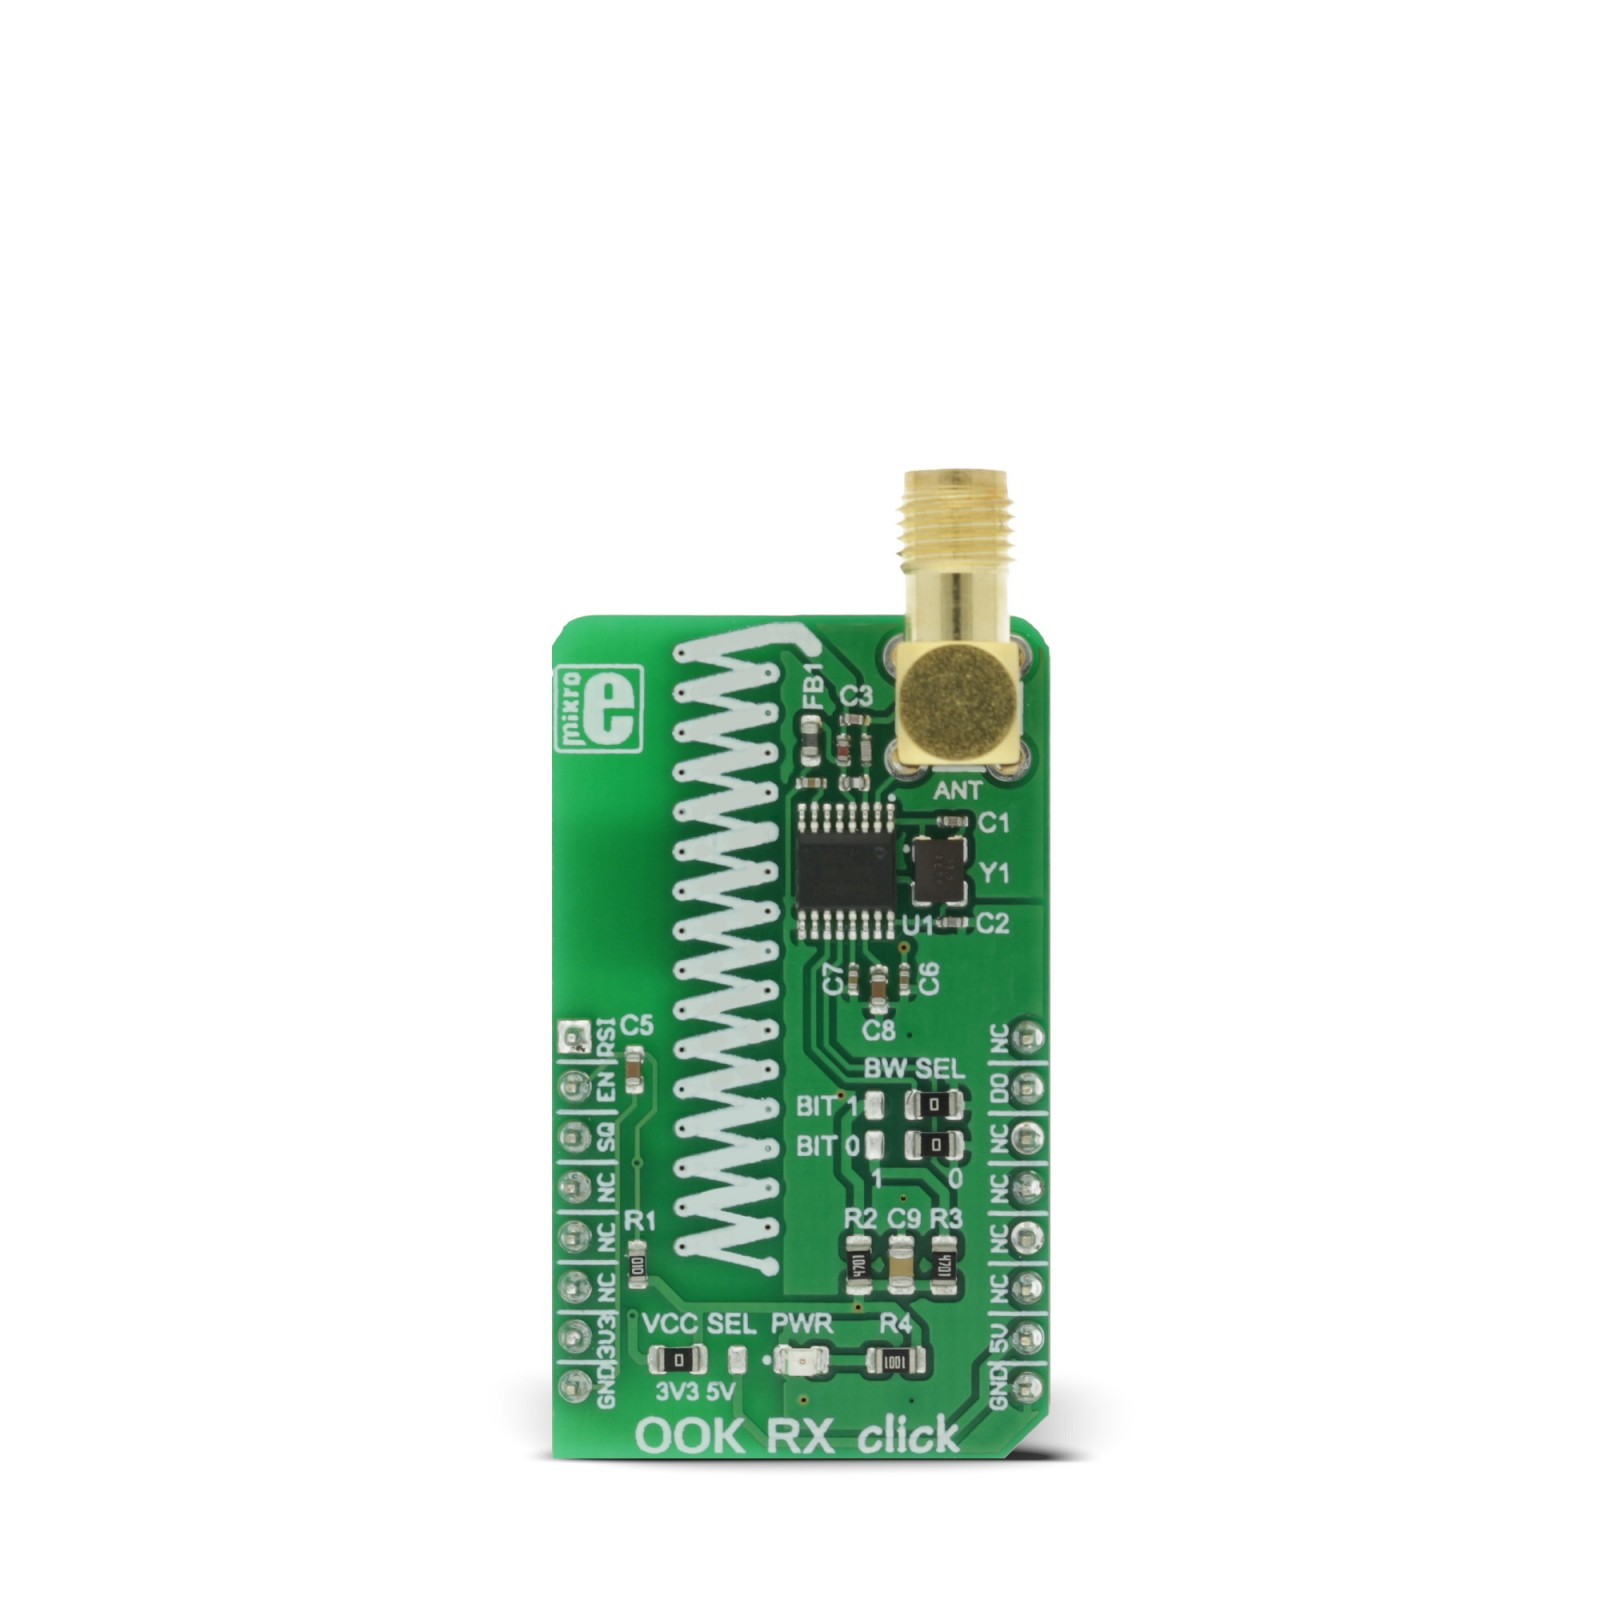 Ook Rx Click Mikroelektronika Wireless Receiving Demodulation Integrated Circuit Diagram Amplifier Mgctlbxnmzp Mgctlbxv5112 Mgctlbxlc Mgctlbxpprestashop